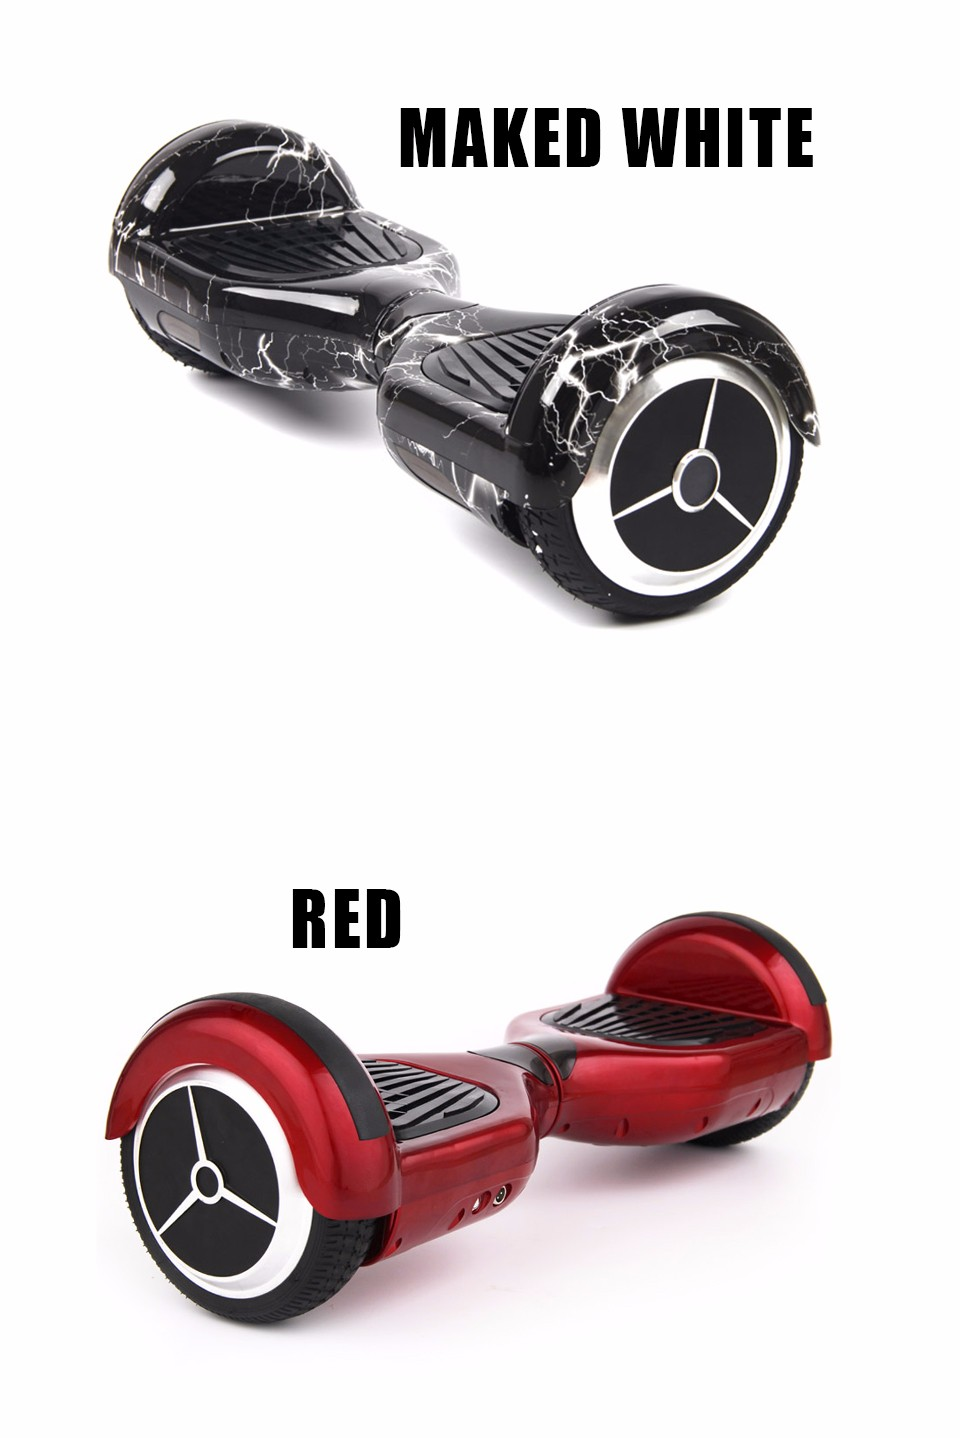 Samsung battery 6.5 inch self balance electric scooter unicycle drift Hoverboard skywalker speedway skateboard Hover board